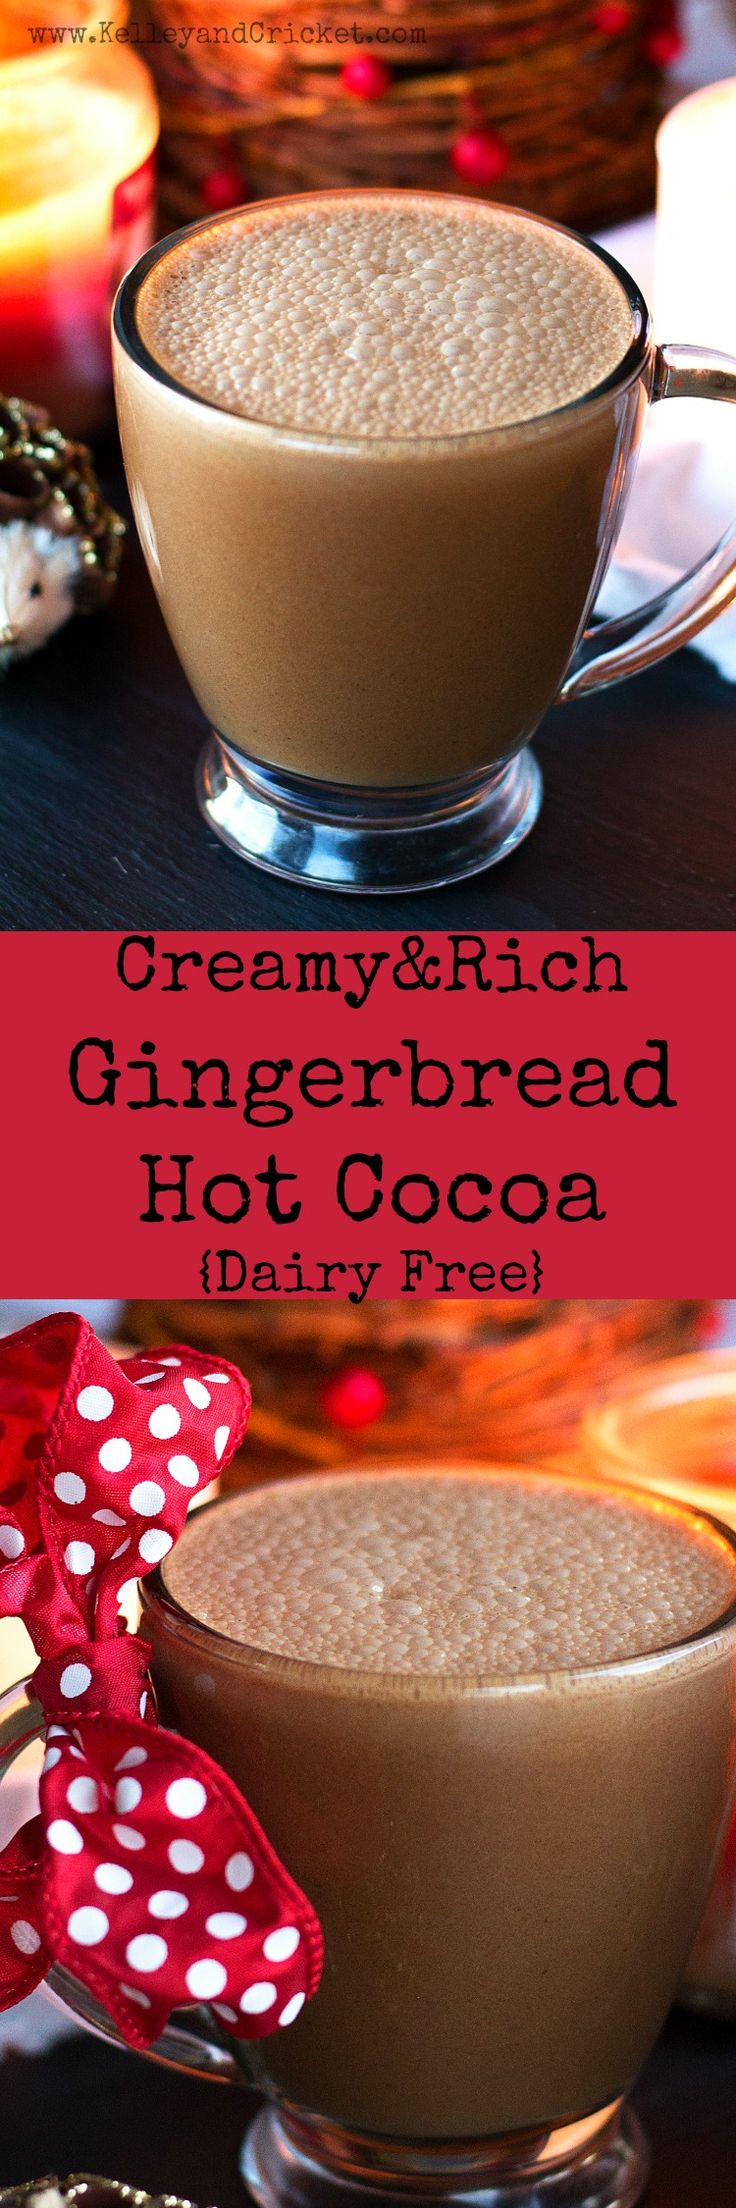 This decadent holiday hot chocolate is extra festive with a hint of gingerbread spice! You'll never know it's dairy free. It has 2 special ingredients that make it extra creamy and so rich!  koawach is available on www.koawach.de!